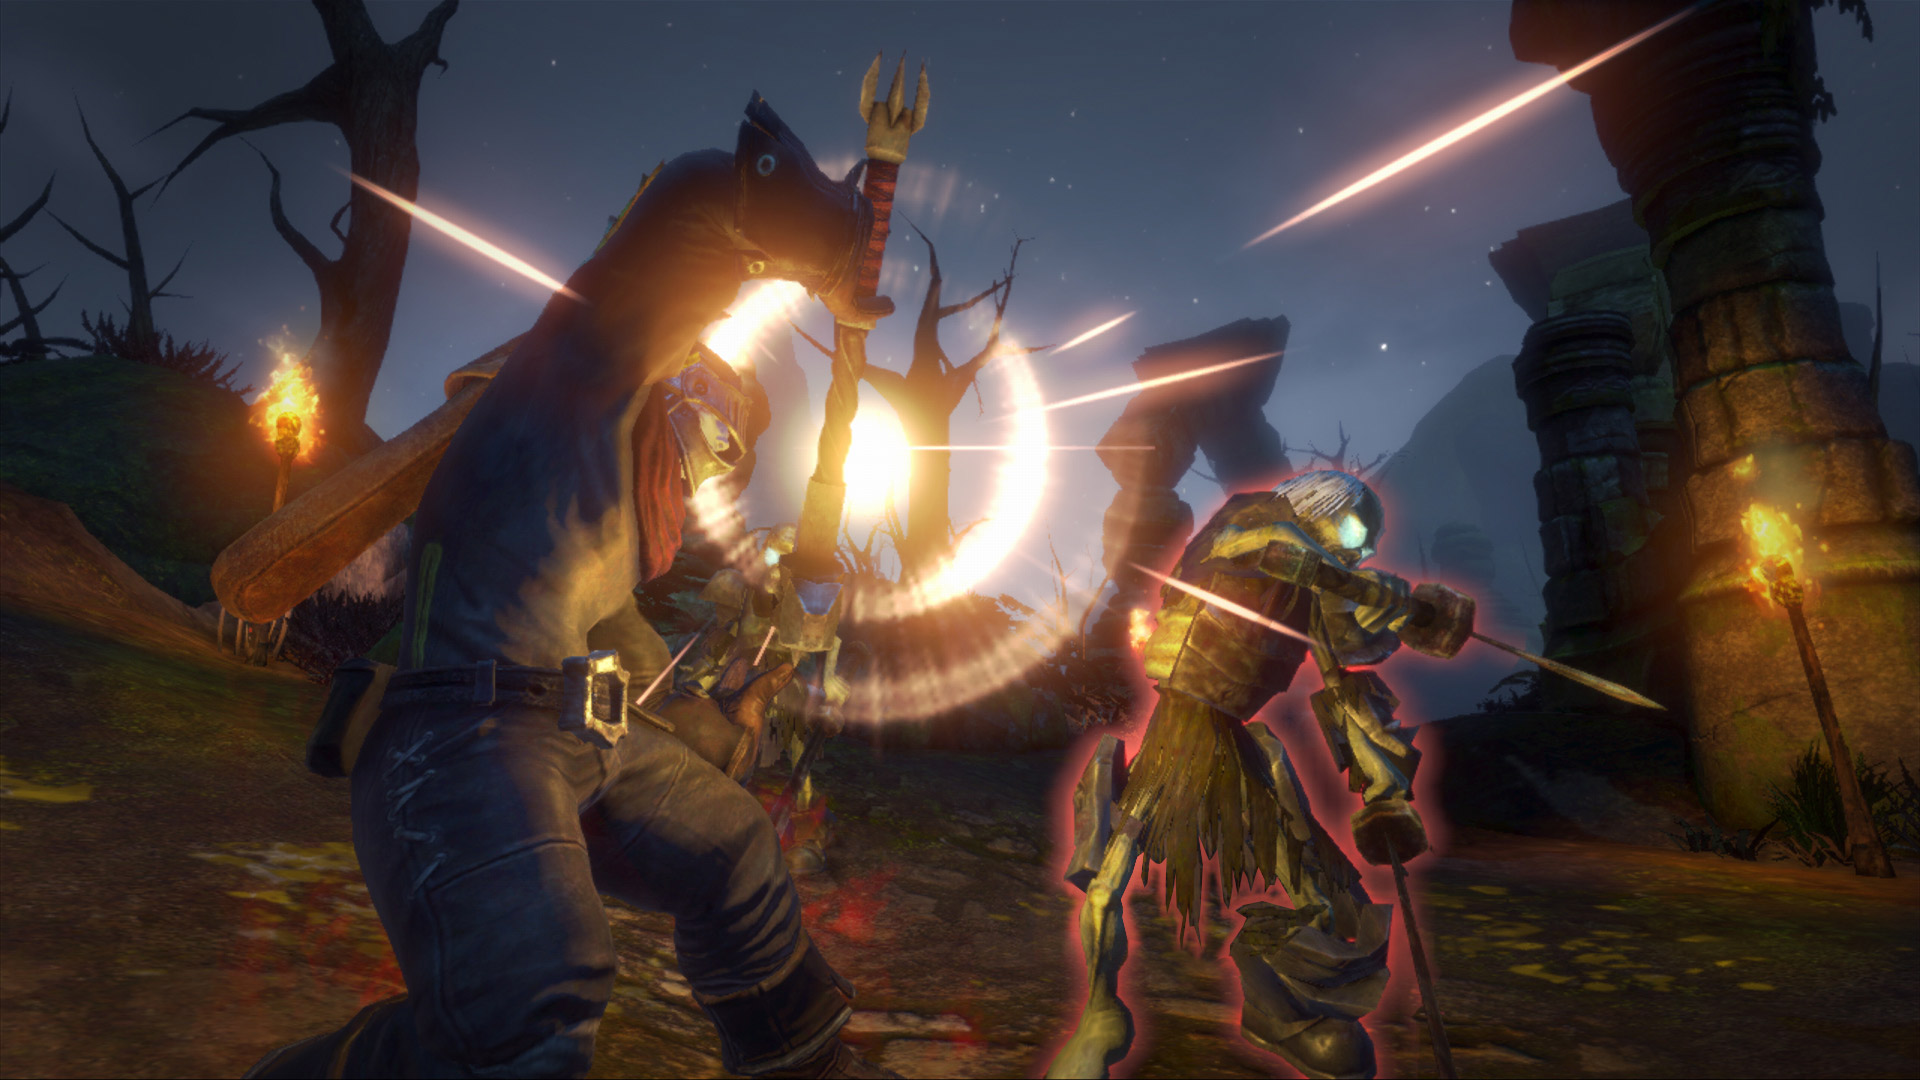 Report: Fable Legends was a $75M project 'nobody' wanted to work on